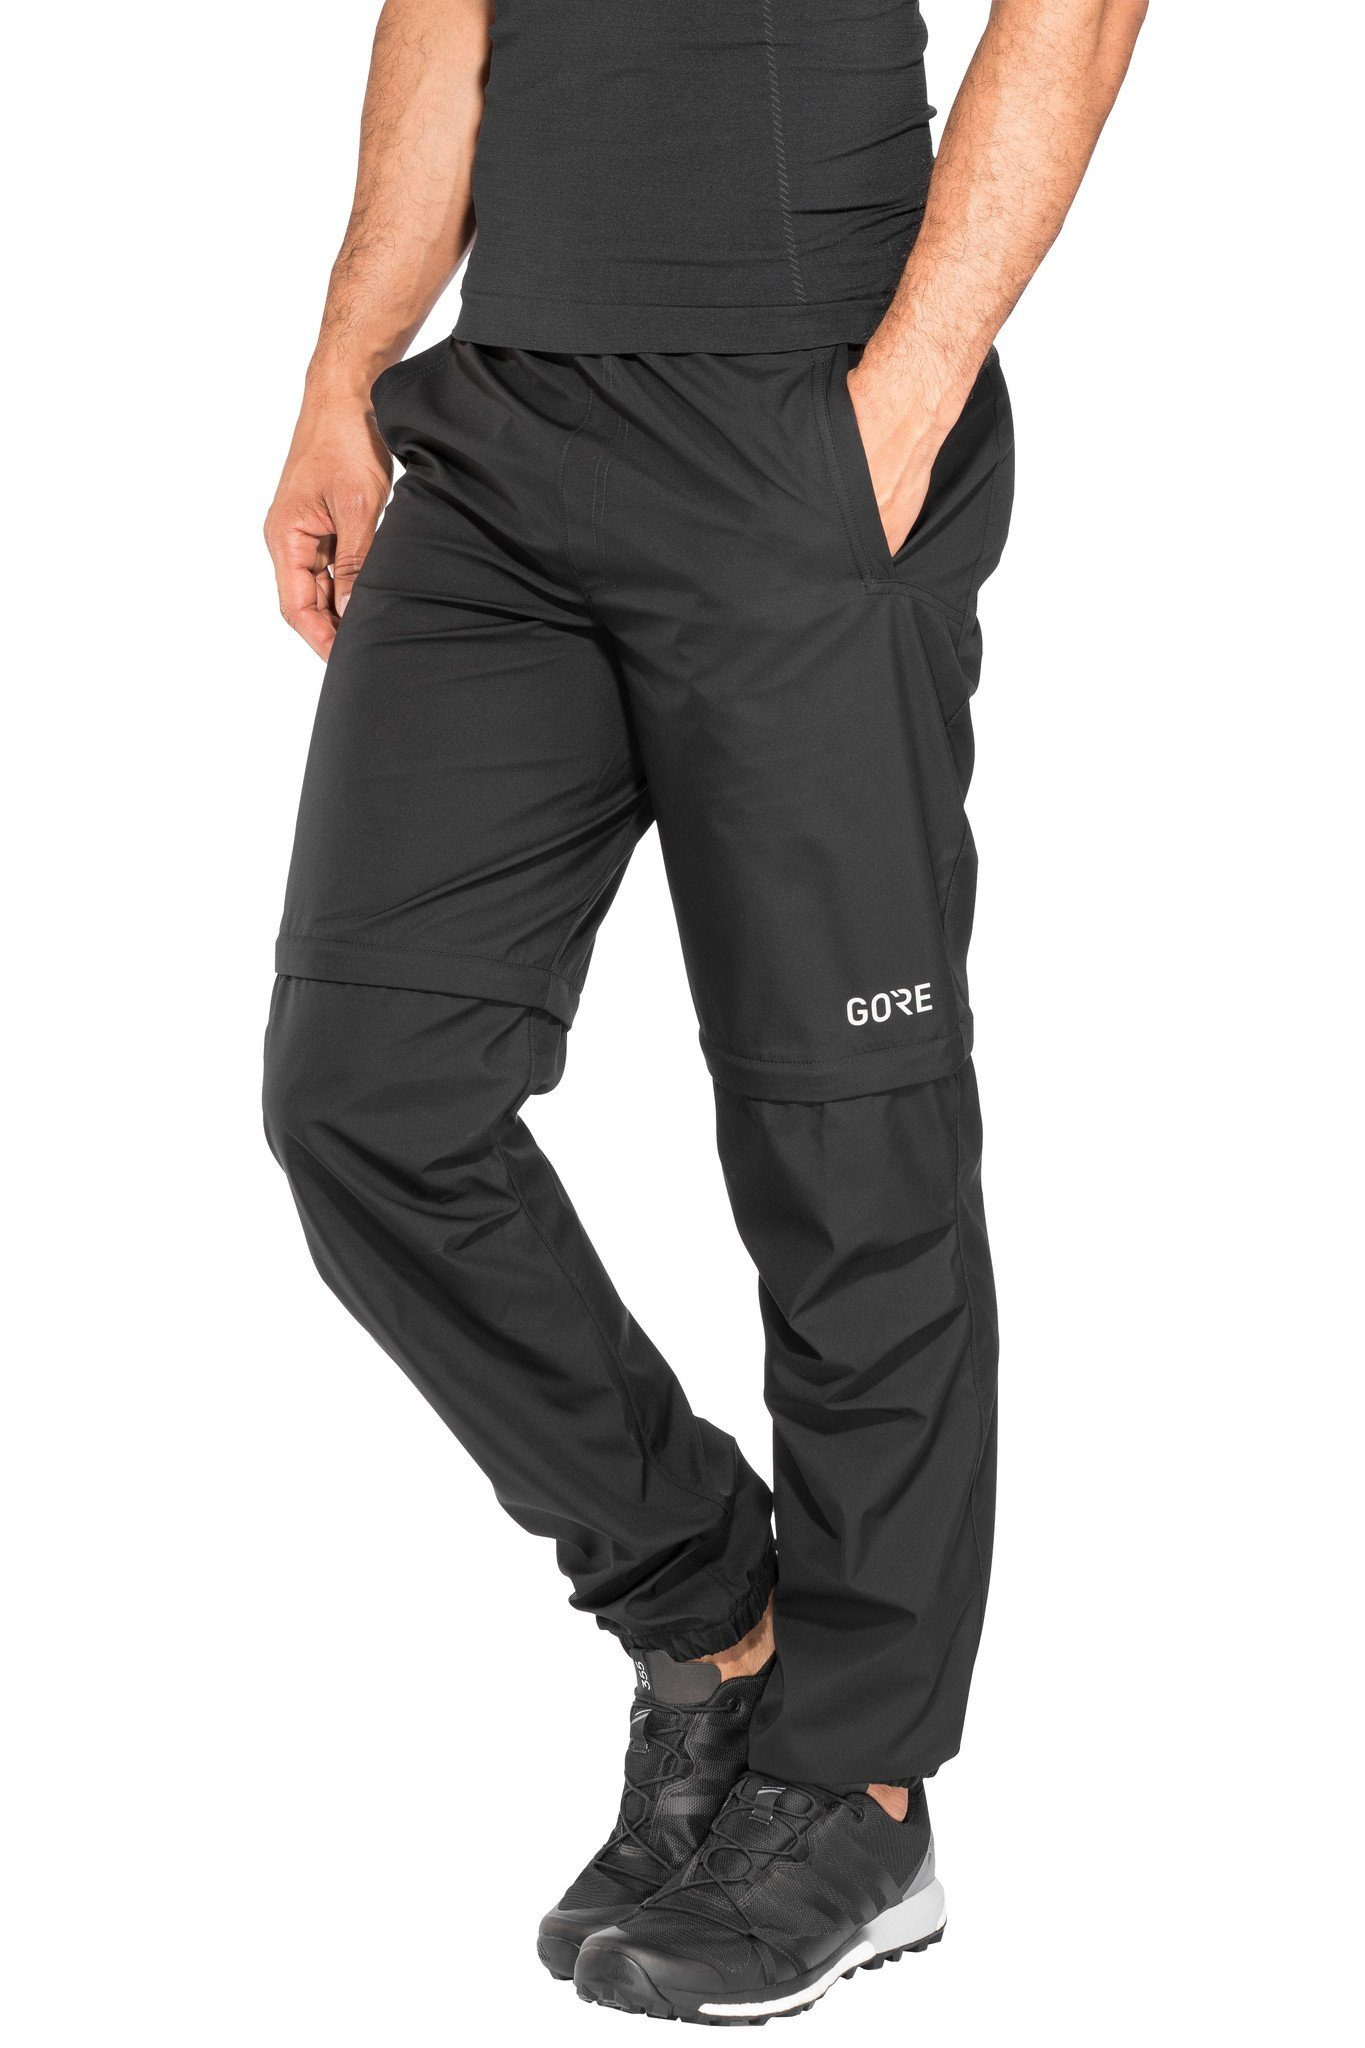 GORE® Wear Laufhose »R3 Gore Windstopper Zip Off Pants Men« online kaufen | OTTO